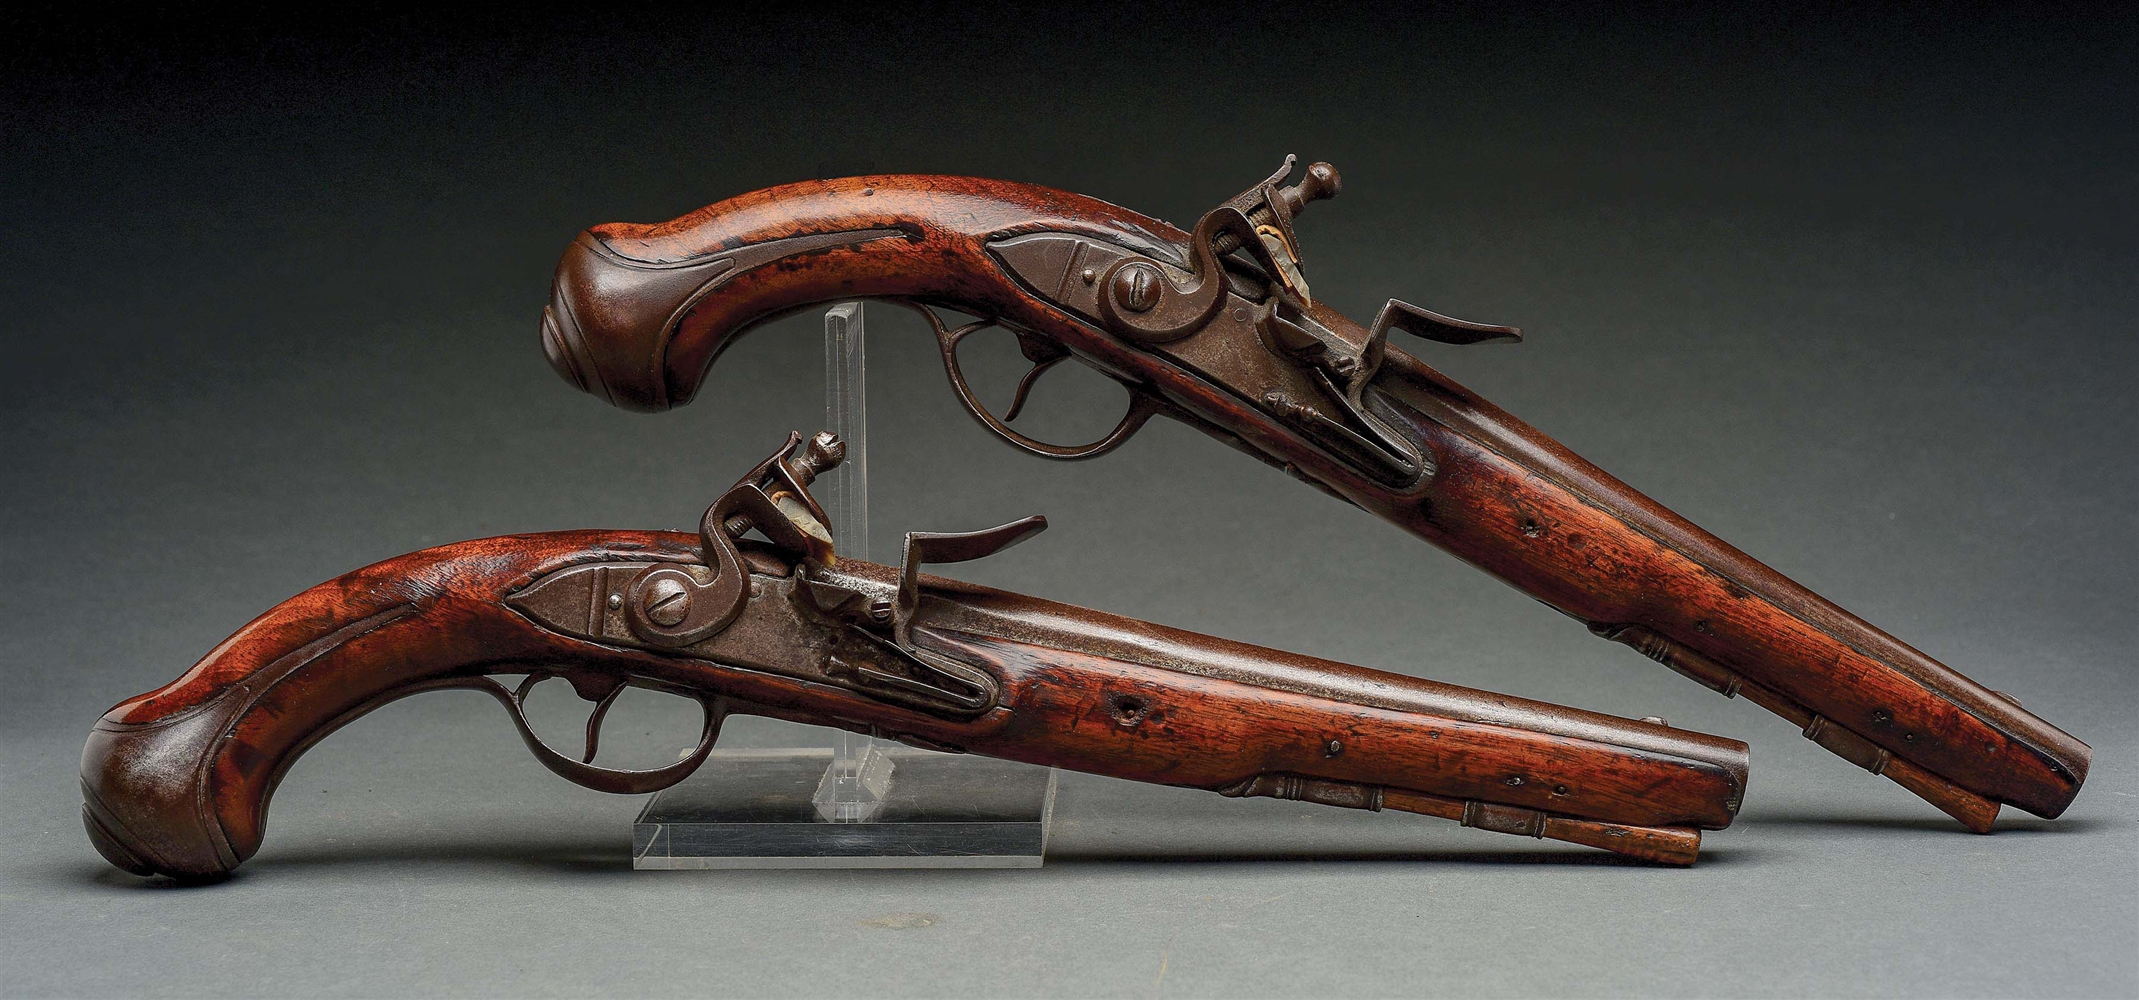 (A) RARE PAIR OF AMERICAN FLINTLOCK HOLSTER PISTOLS BY THOMAS ANNELY.